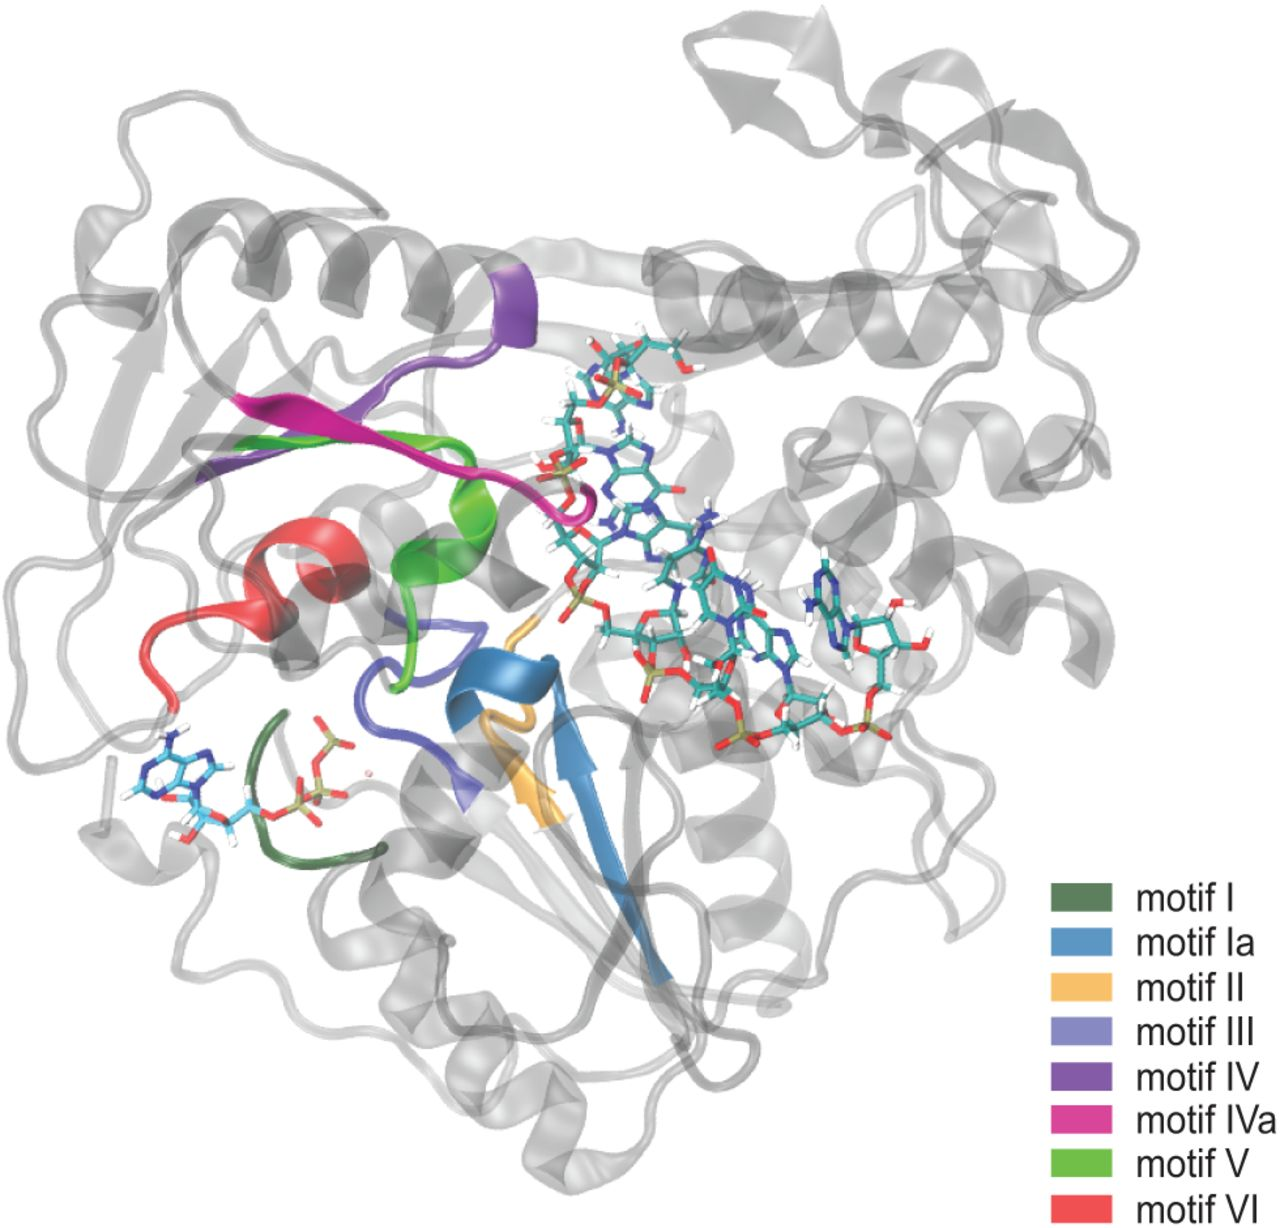 Eight structural motifs of Flavivirus NS3 helicases are highly conserved. The structural Motifs (I, Ia, II, III, IV, IVa, V, VI) are located between the <t>ATP</t> binding pocket and <t>RNA</t> binding cleft. Each Motif is highlighted as follows: Motif I in dark green; Motif Ia in blue; Motif II in orange; Motif III in royal blue; Motif IV in purple; Motif IVa in magenta; Motif V in lime green; Motif VI in red.